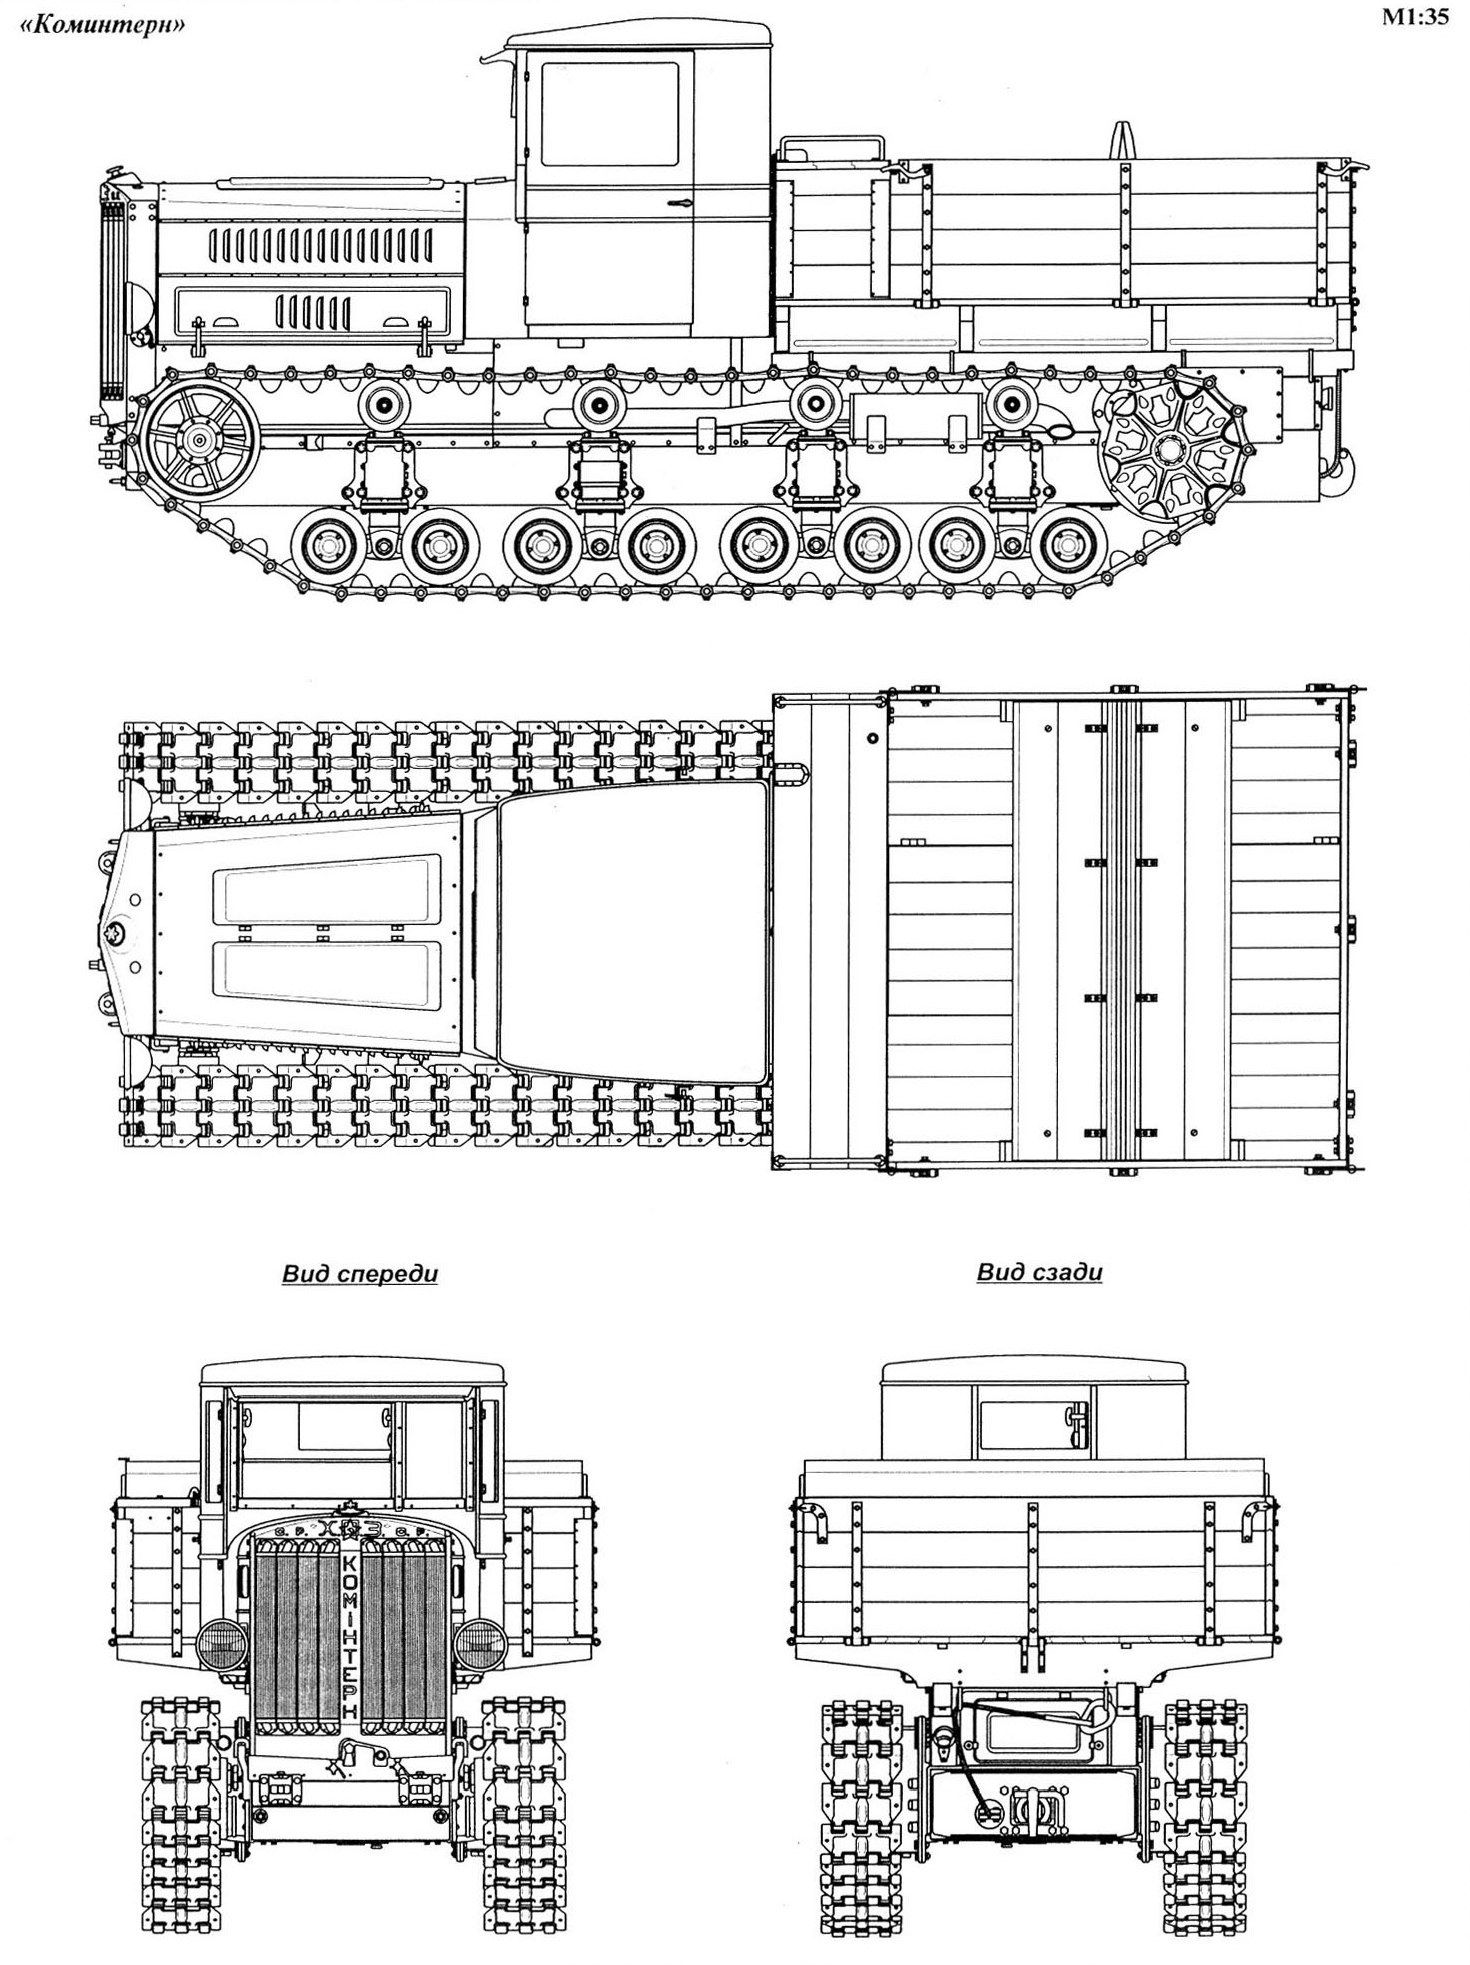 Komintern bp1 id505 blueprints pinterest vehicle komintern bp1 id505 malvernweather Images